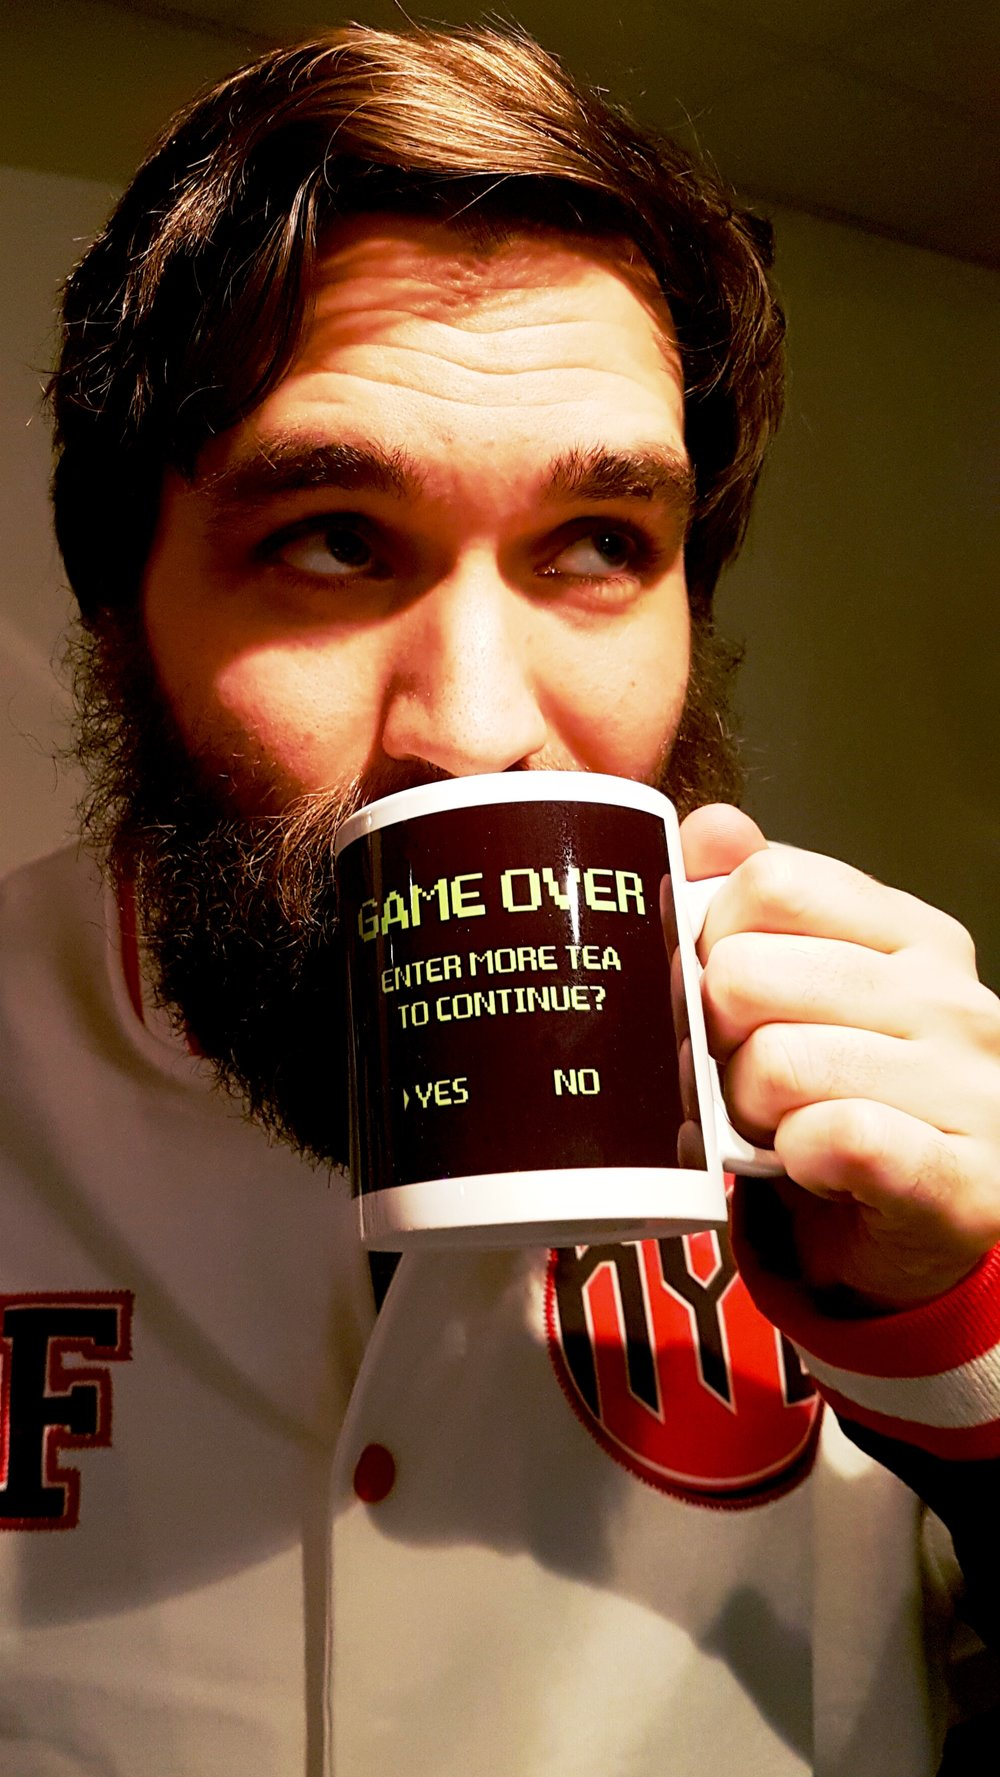 George, seen here modelling a highly desirable mug (and beard).